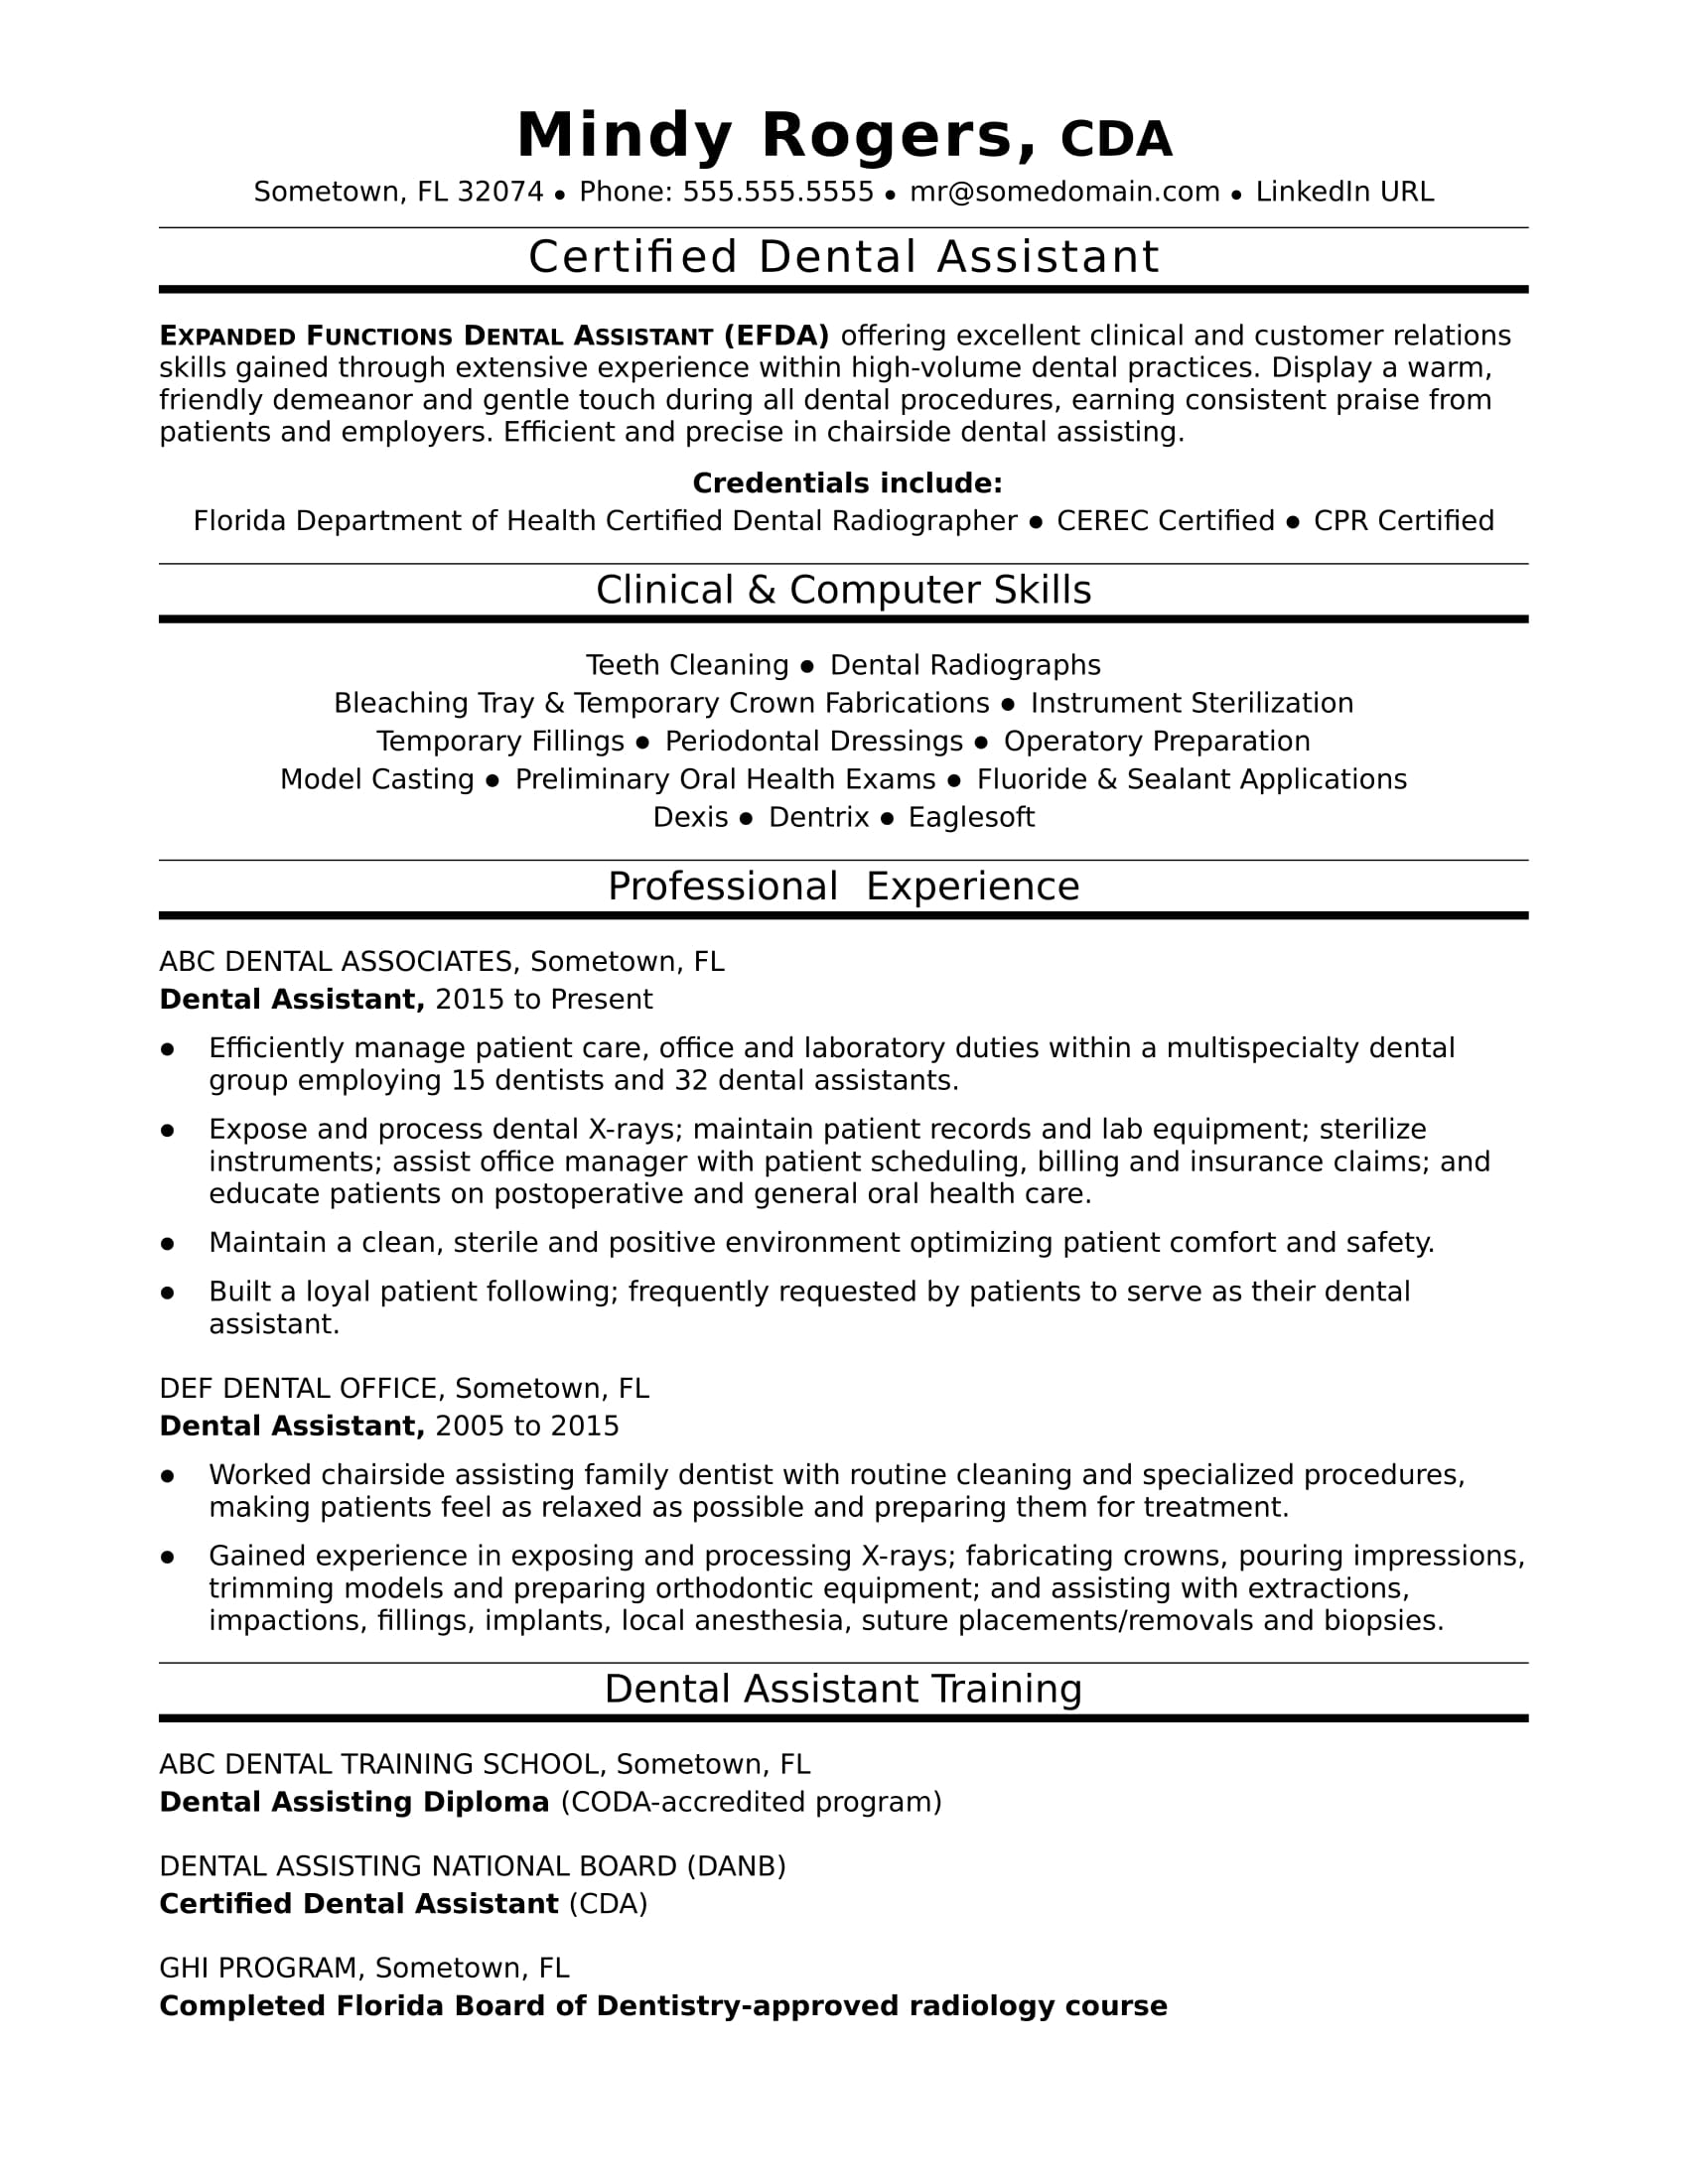 dental assistant resume sample monster possible skills for dunkin donuts crew member job Resume Possible Skills For Resume